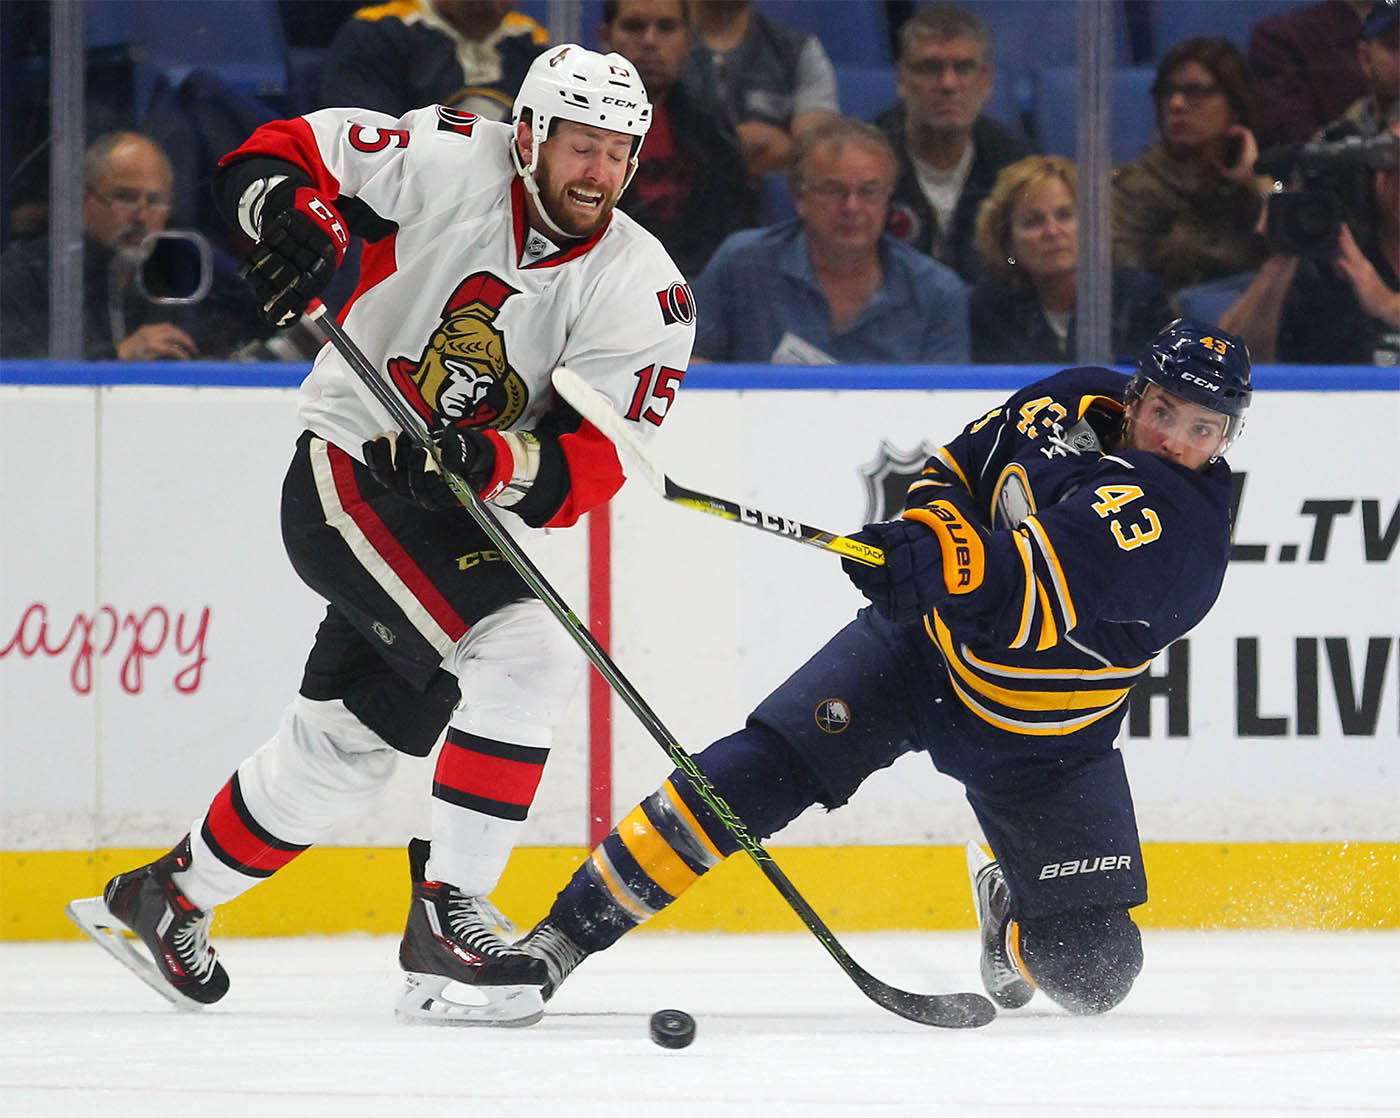 The Sabres' Daniel Catenacci clears the puck from the Senators' Zach Smith in the first period of the game at the KeyBank Center in Buffalo Tuesday, Sept. 27, 2016. (Mark Mulville/Buffalo News)